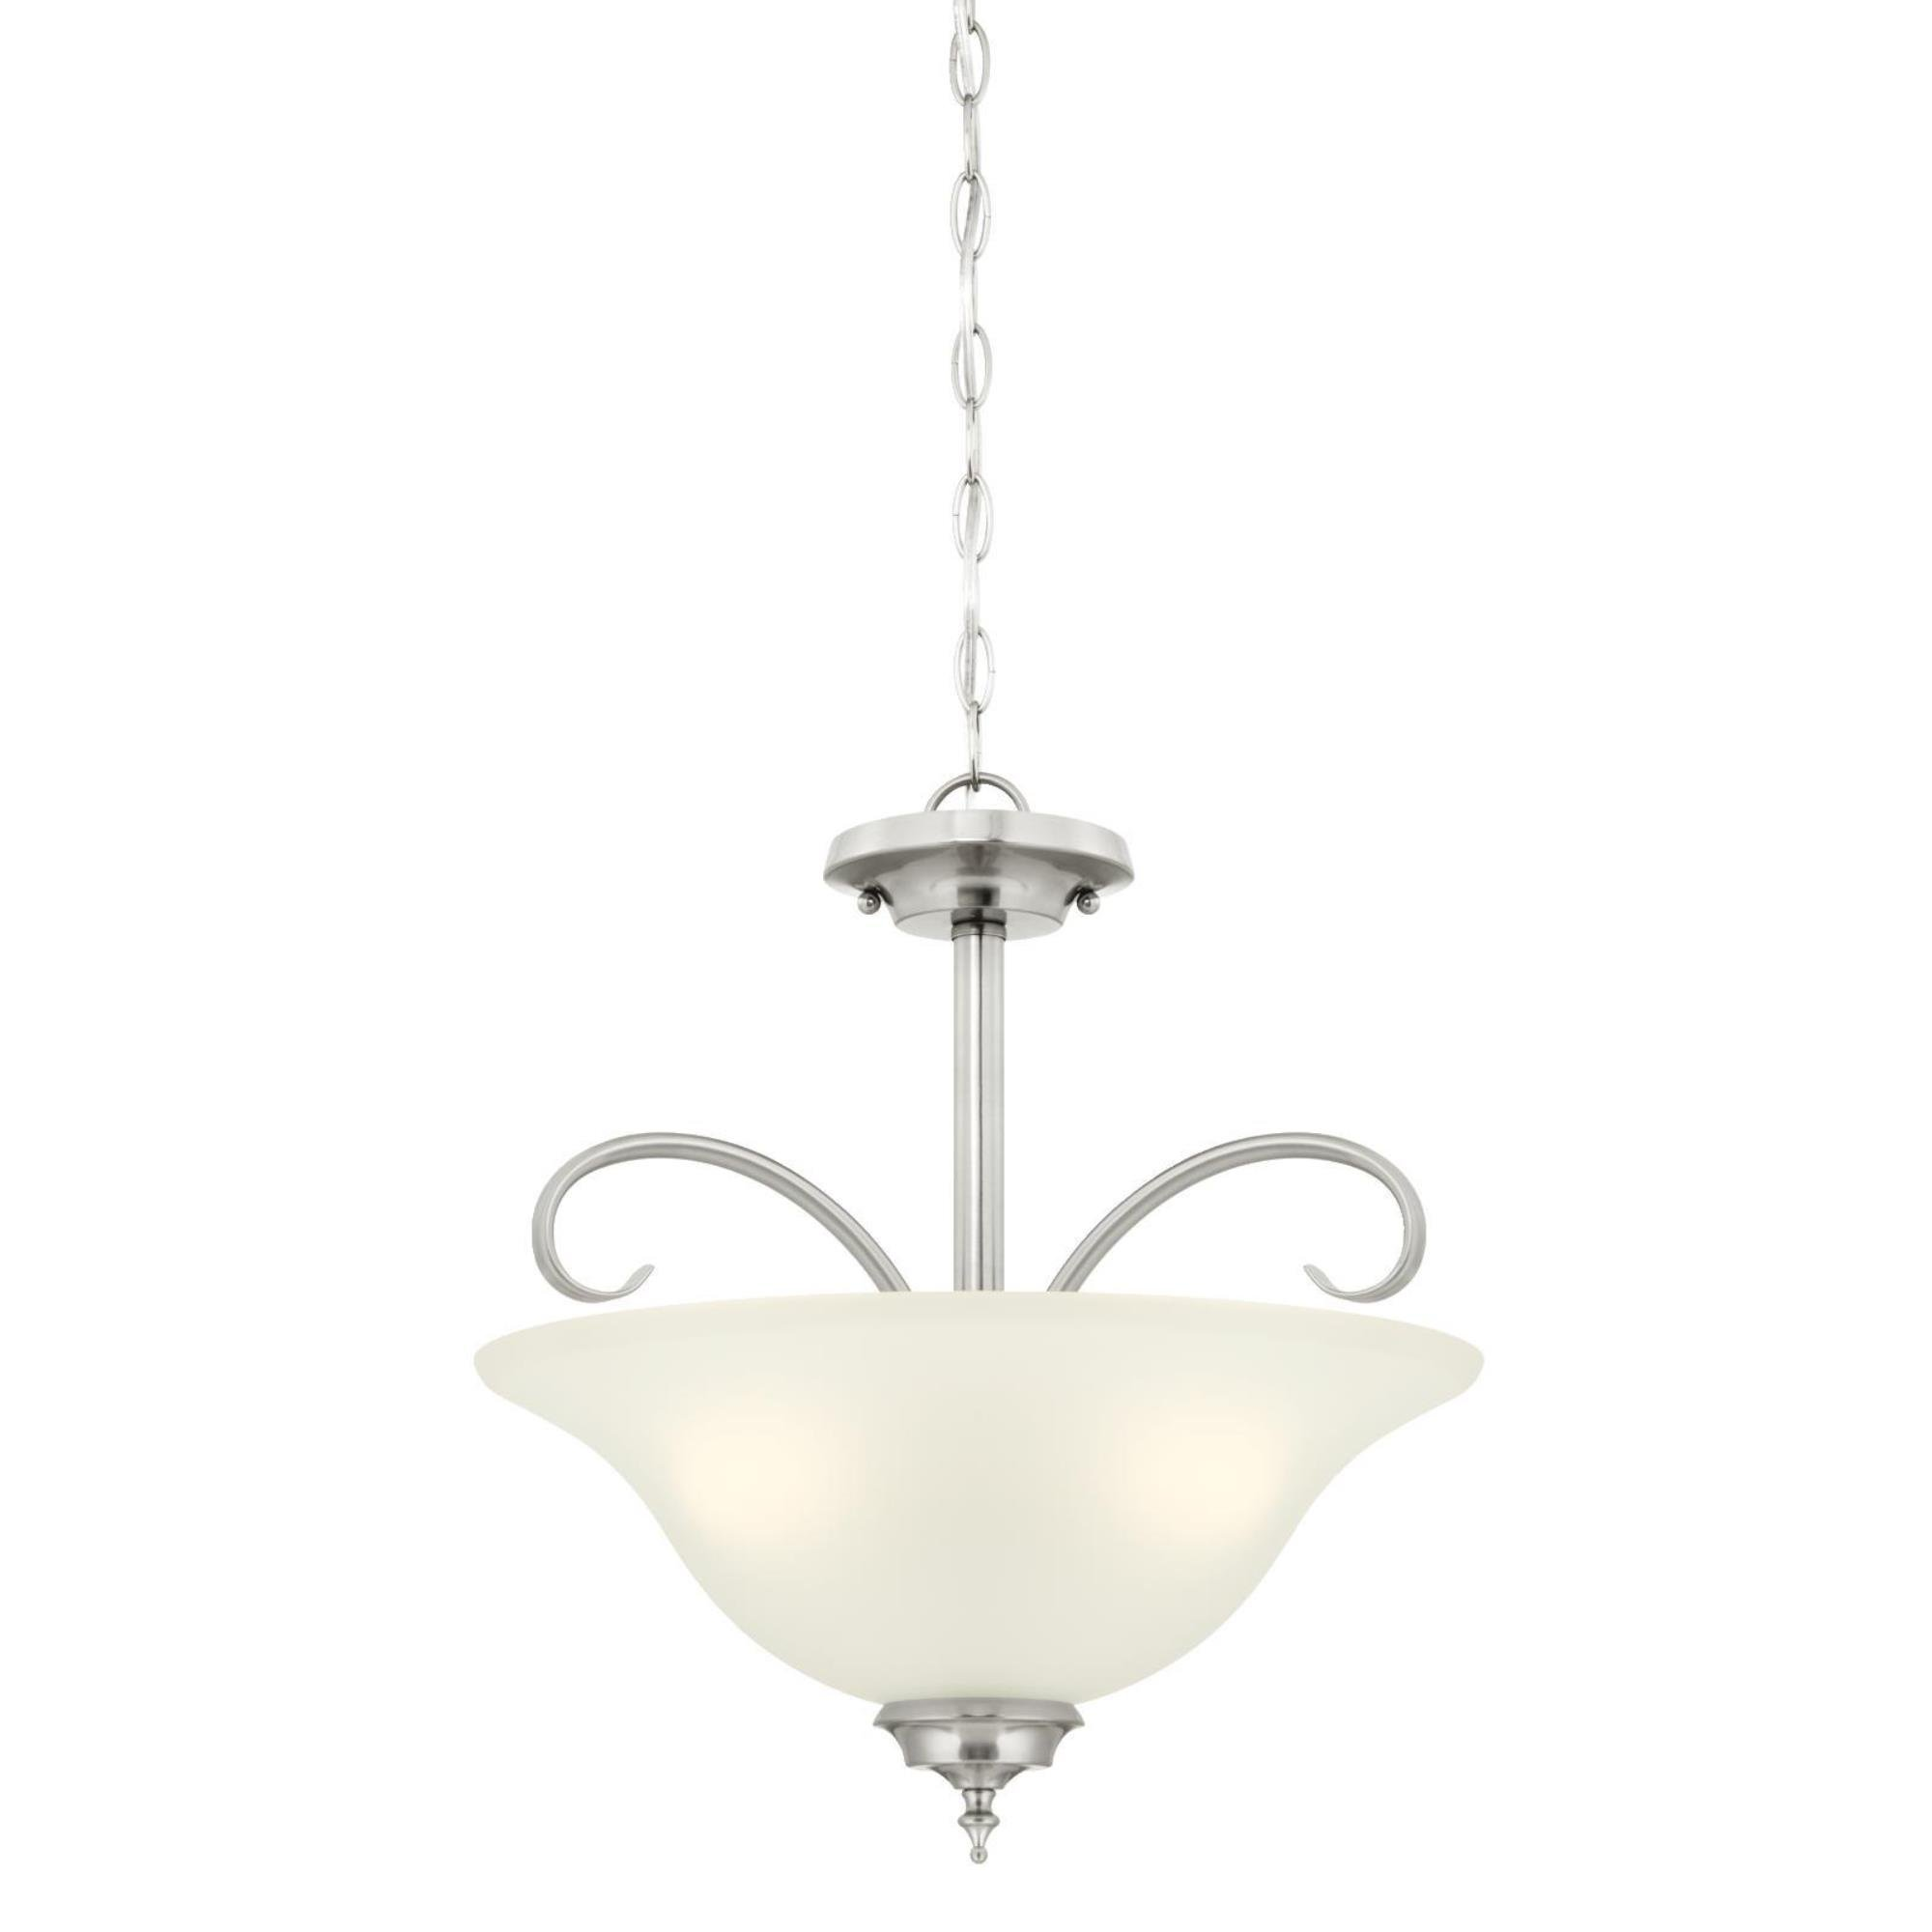 Westinghouse 6305400 Harwell Three-Light Indoor Convertible Pendant/Semi-Flush Ceiling Fixture, Brushed Nickel Finish with Frosted Glass